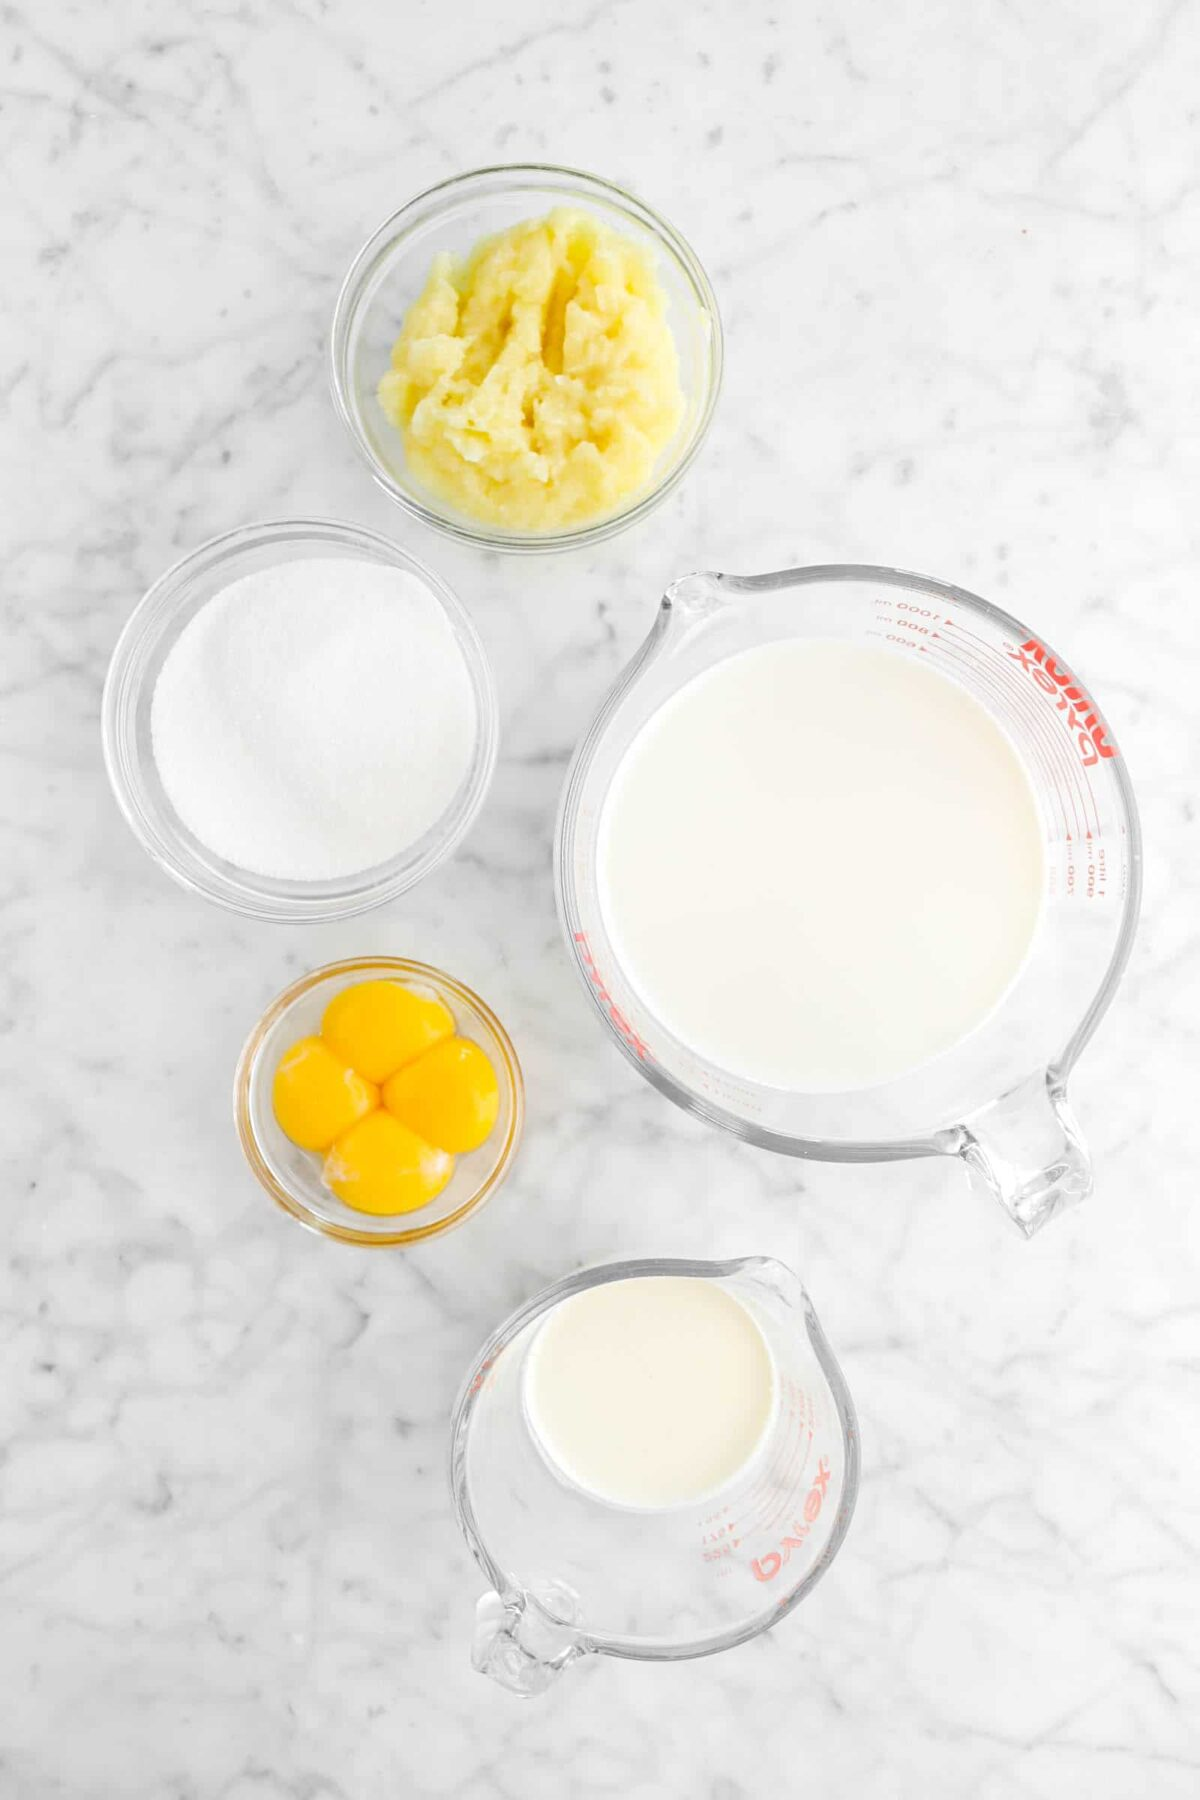 pureed apples, sugar, egg yolks, milk, and cream on marble counter